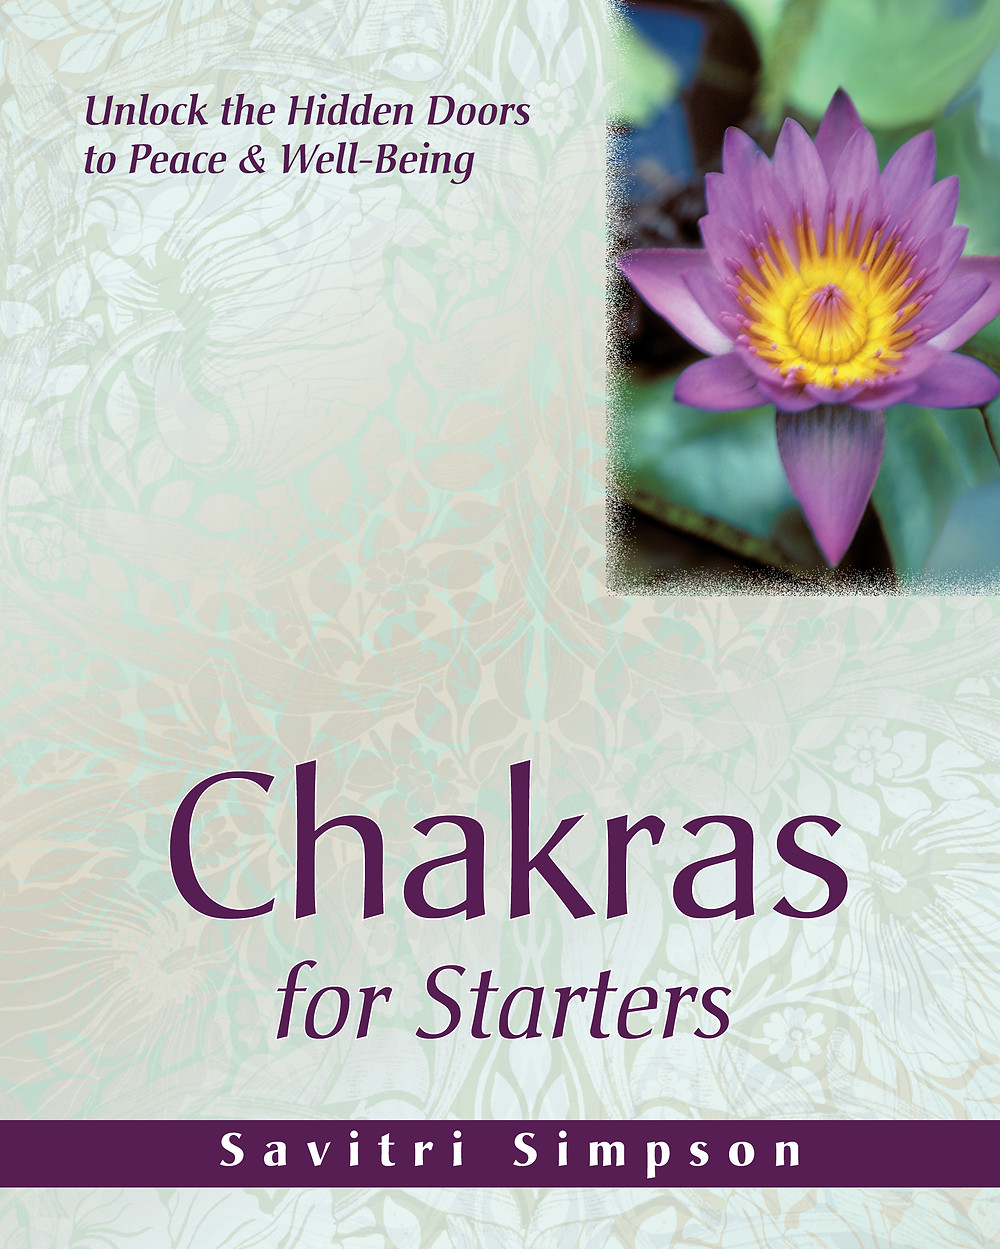 Chakras for Starters by Savitri Simpson